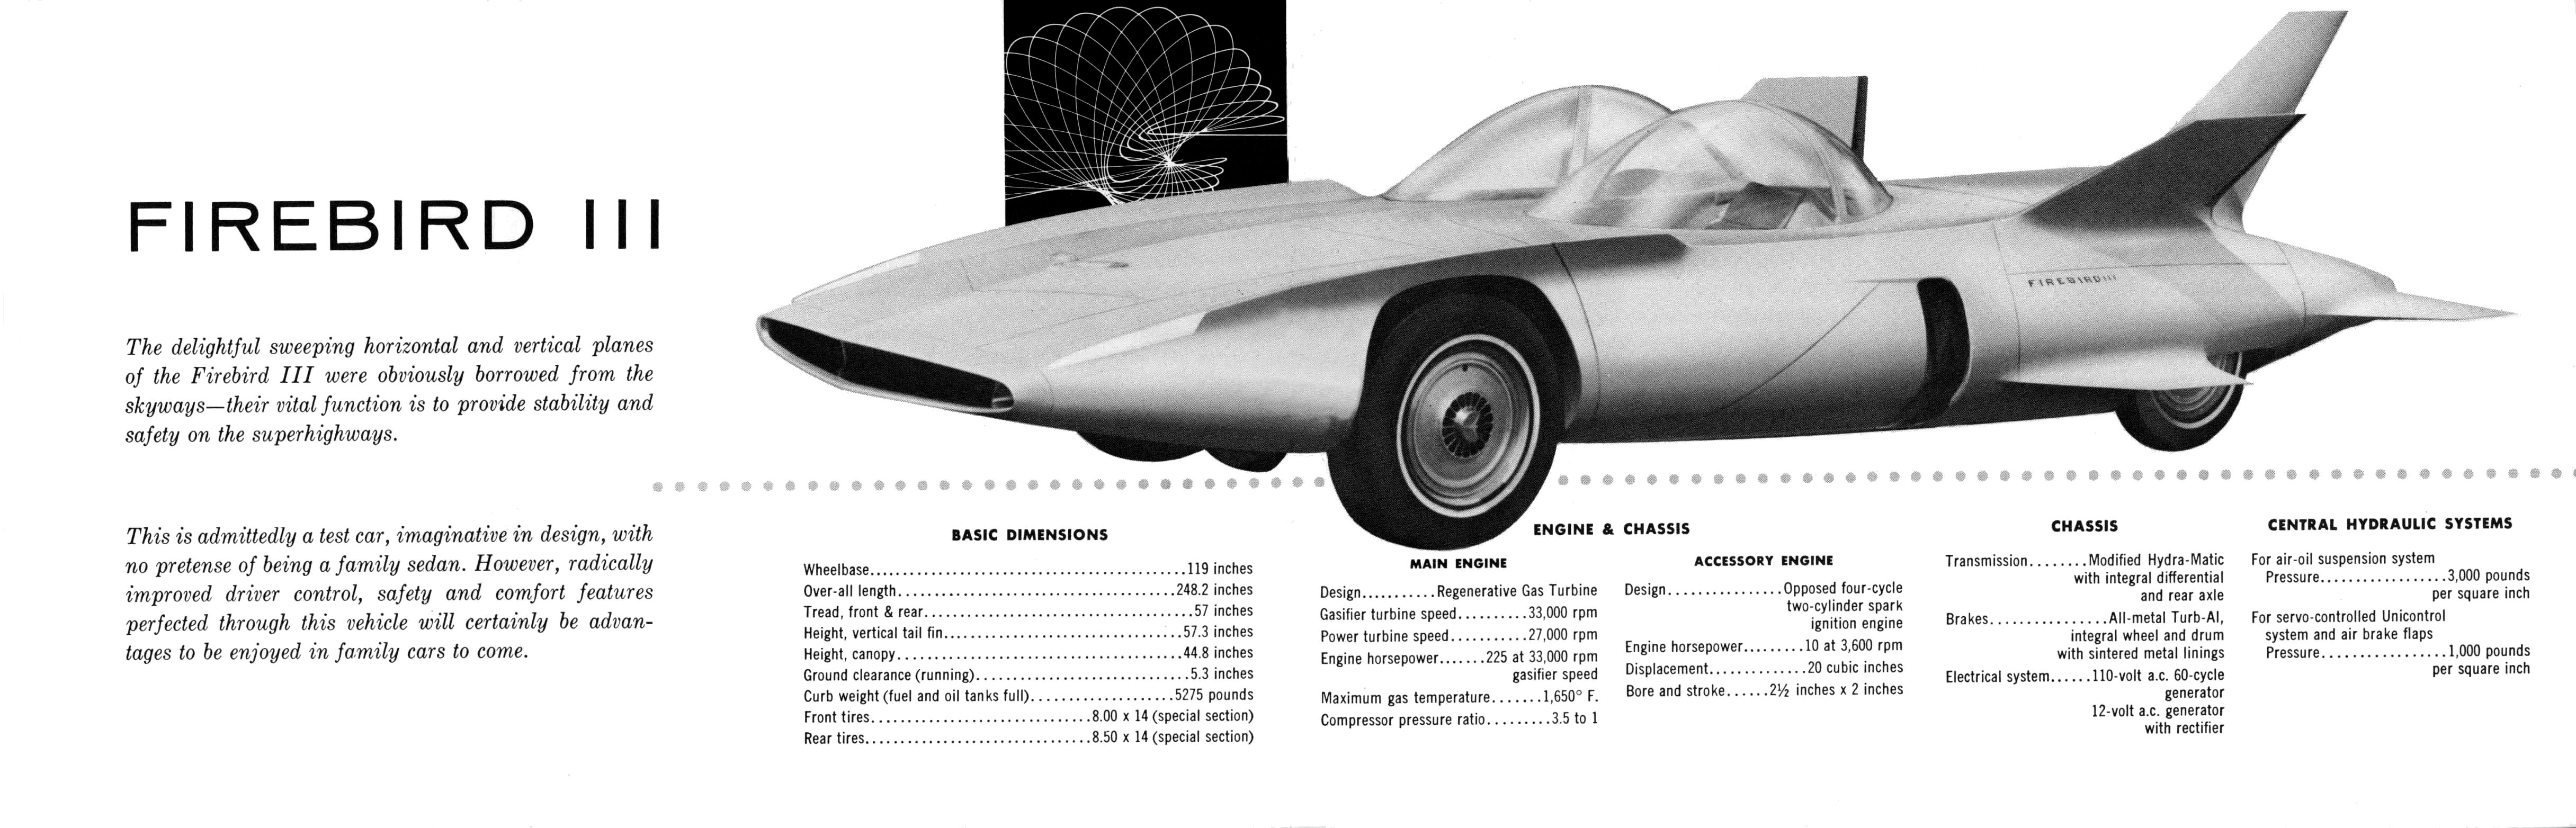 General Motors Firebird III 1958 brochure  | Concept Cars & Car